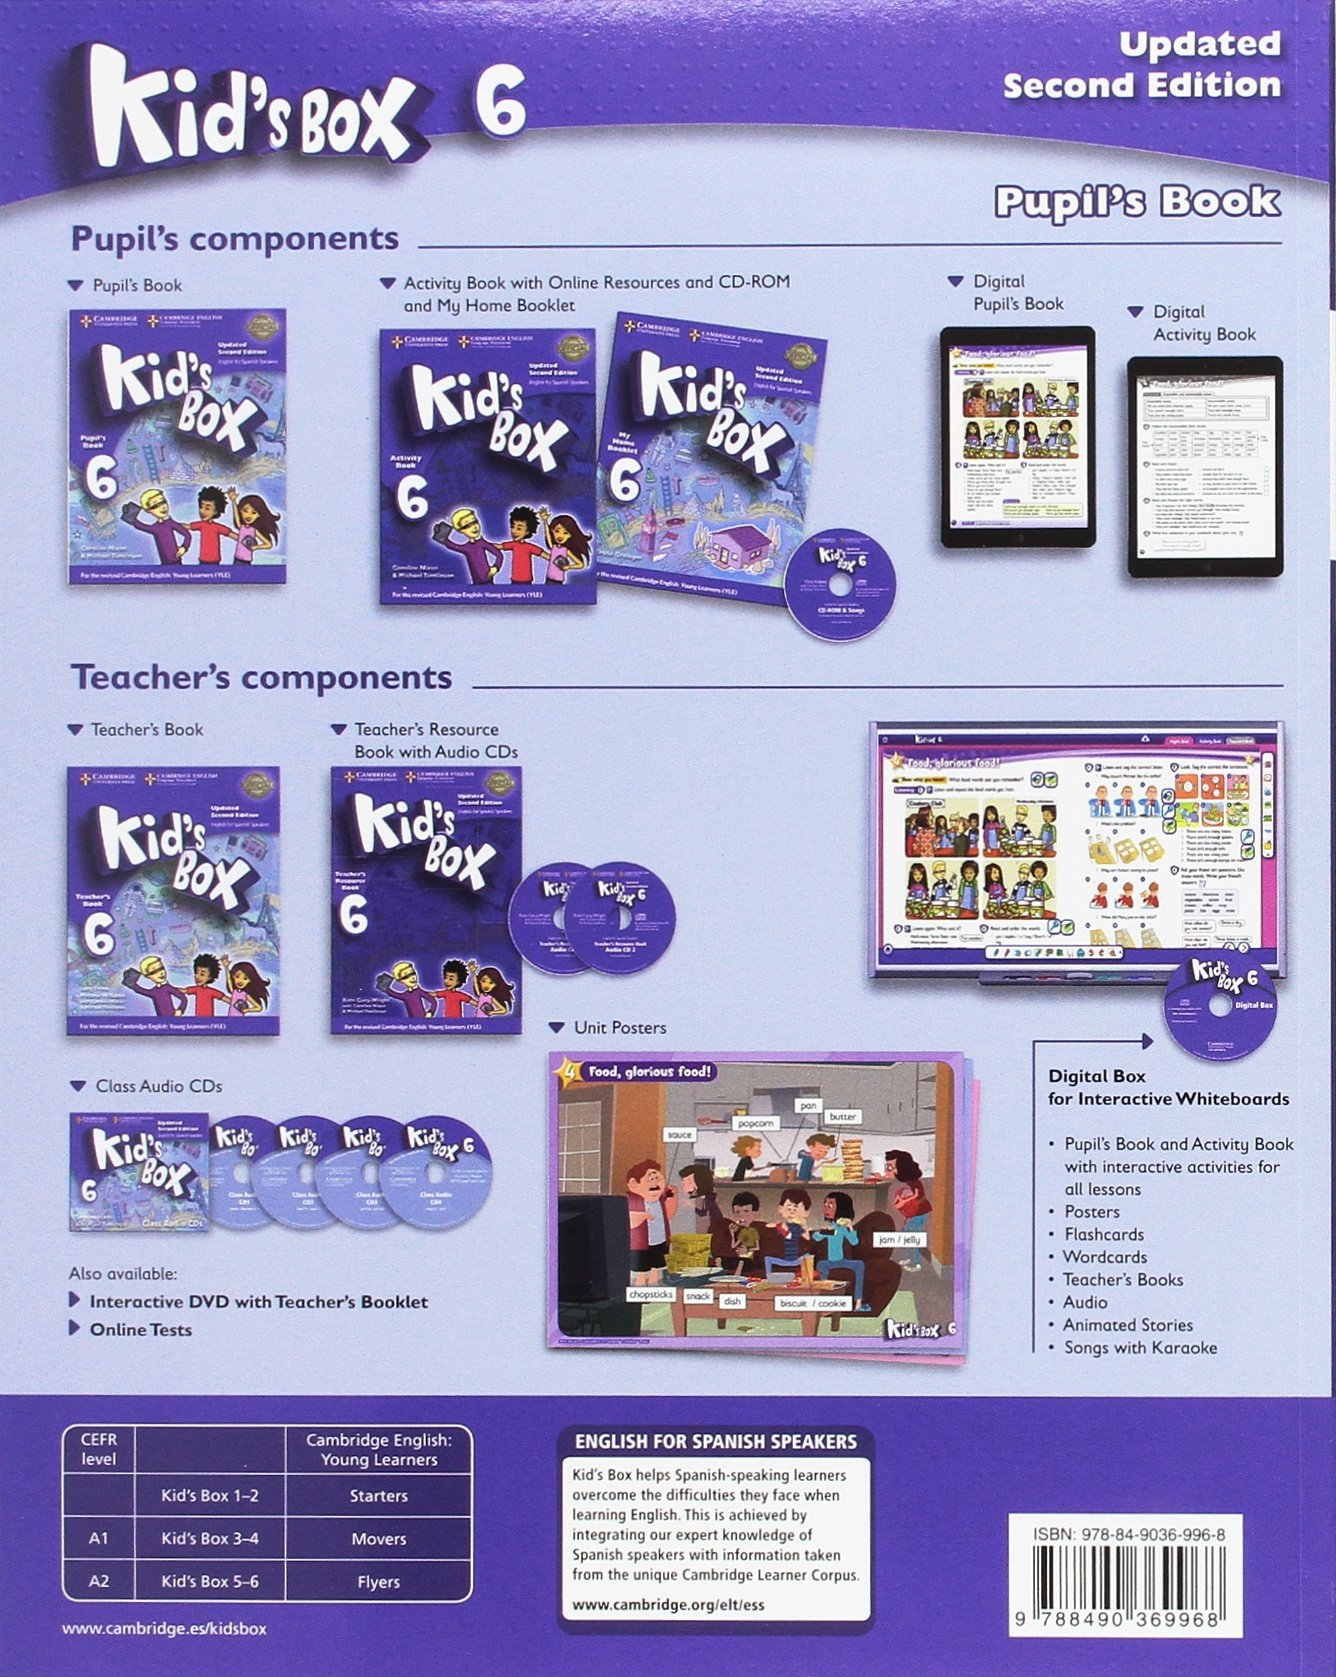 ... Kid s Box Level 6 Pupil s Book Updated English for Spanish Speakers